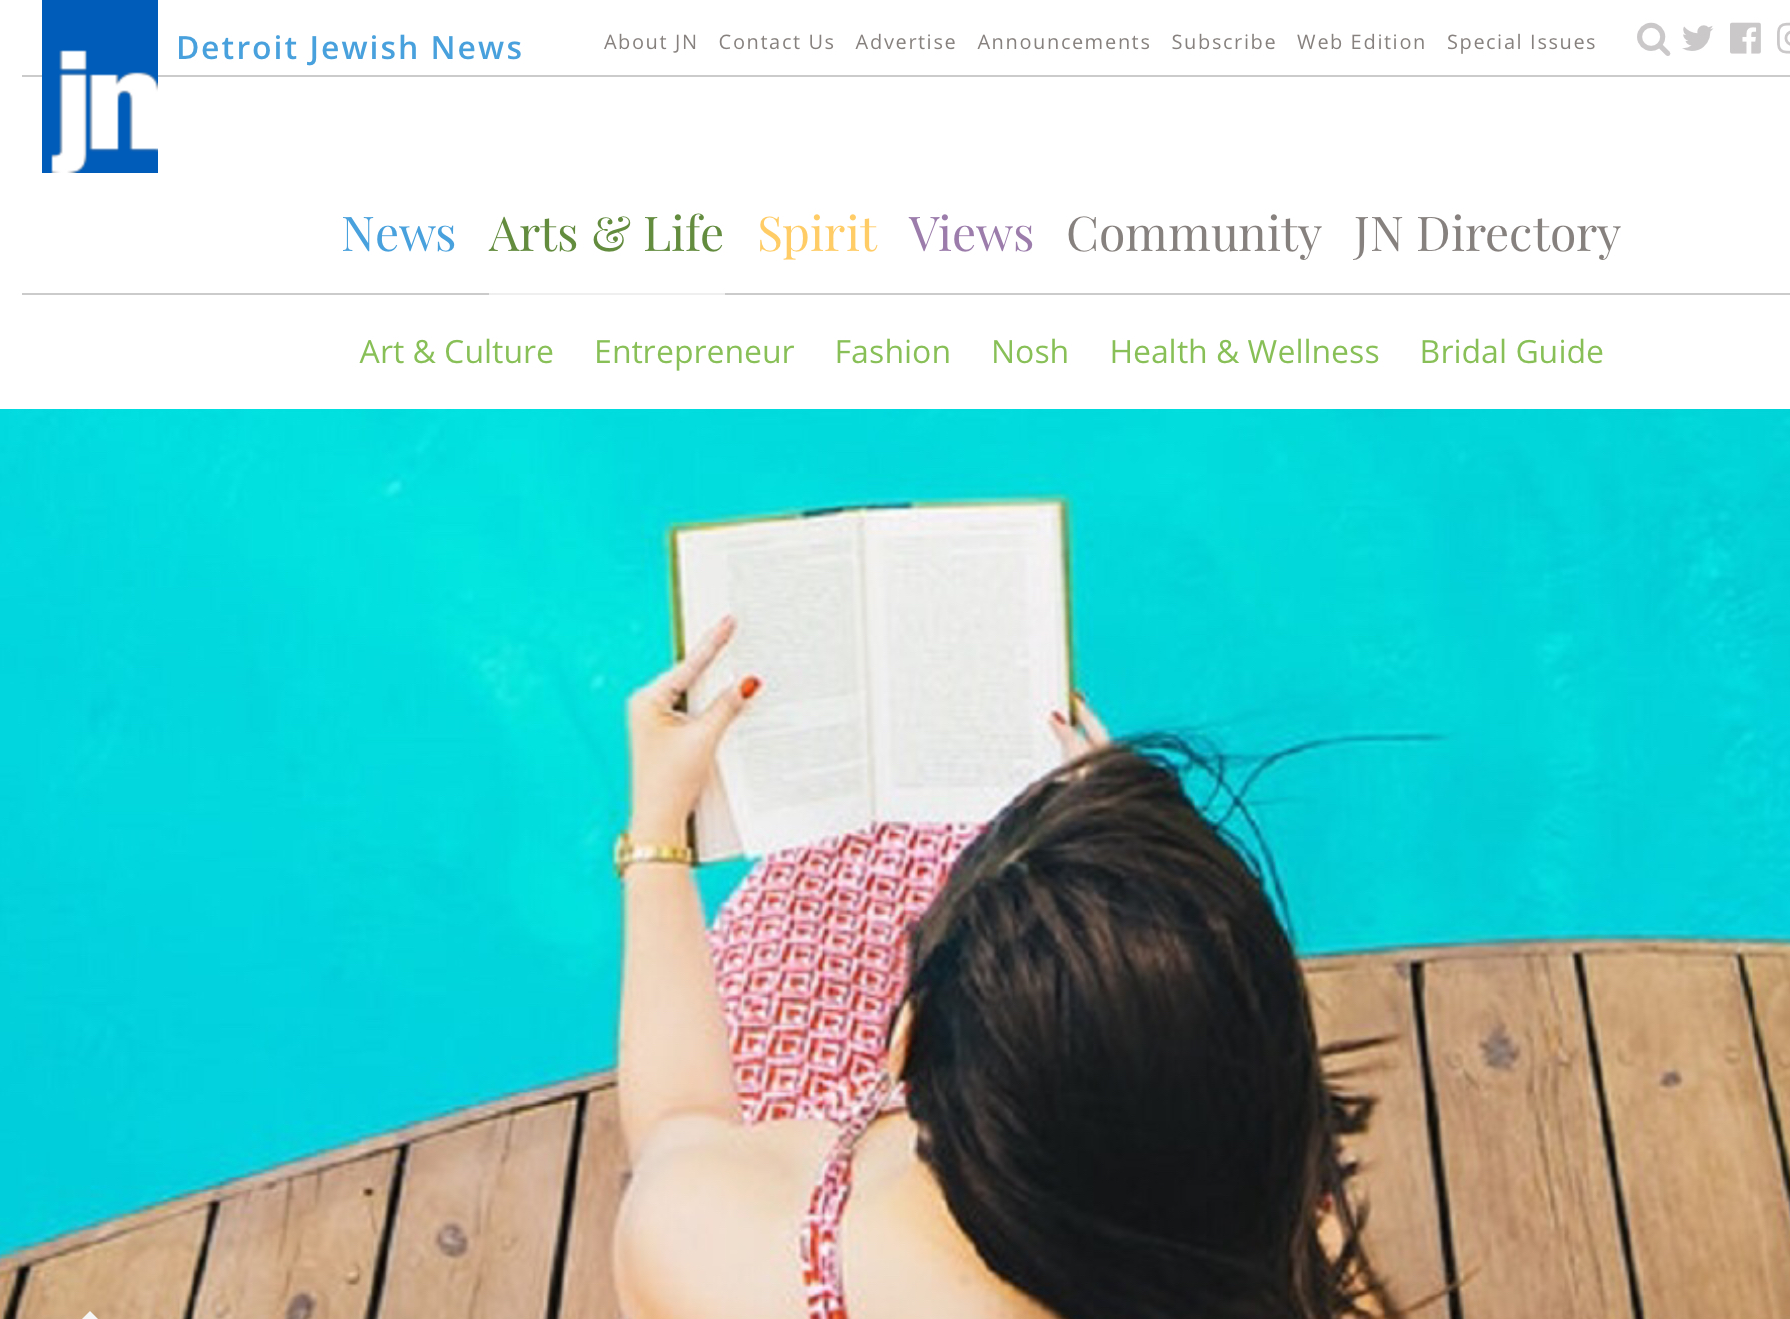 "The Detroit Jewish News Features The Lost Family On Summer Reading List - Thank you to The Detroit Jewish News for recommending The Lost Family as a summer must-read! (We'd also love to take a dip in that pool & investigate the section called ""Nosh."") To read the whole list, please click HERE."